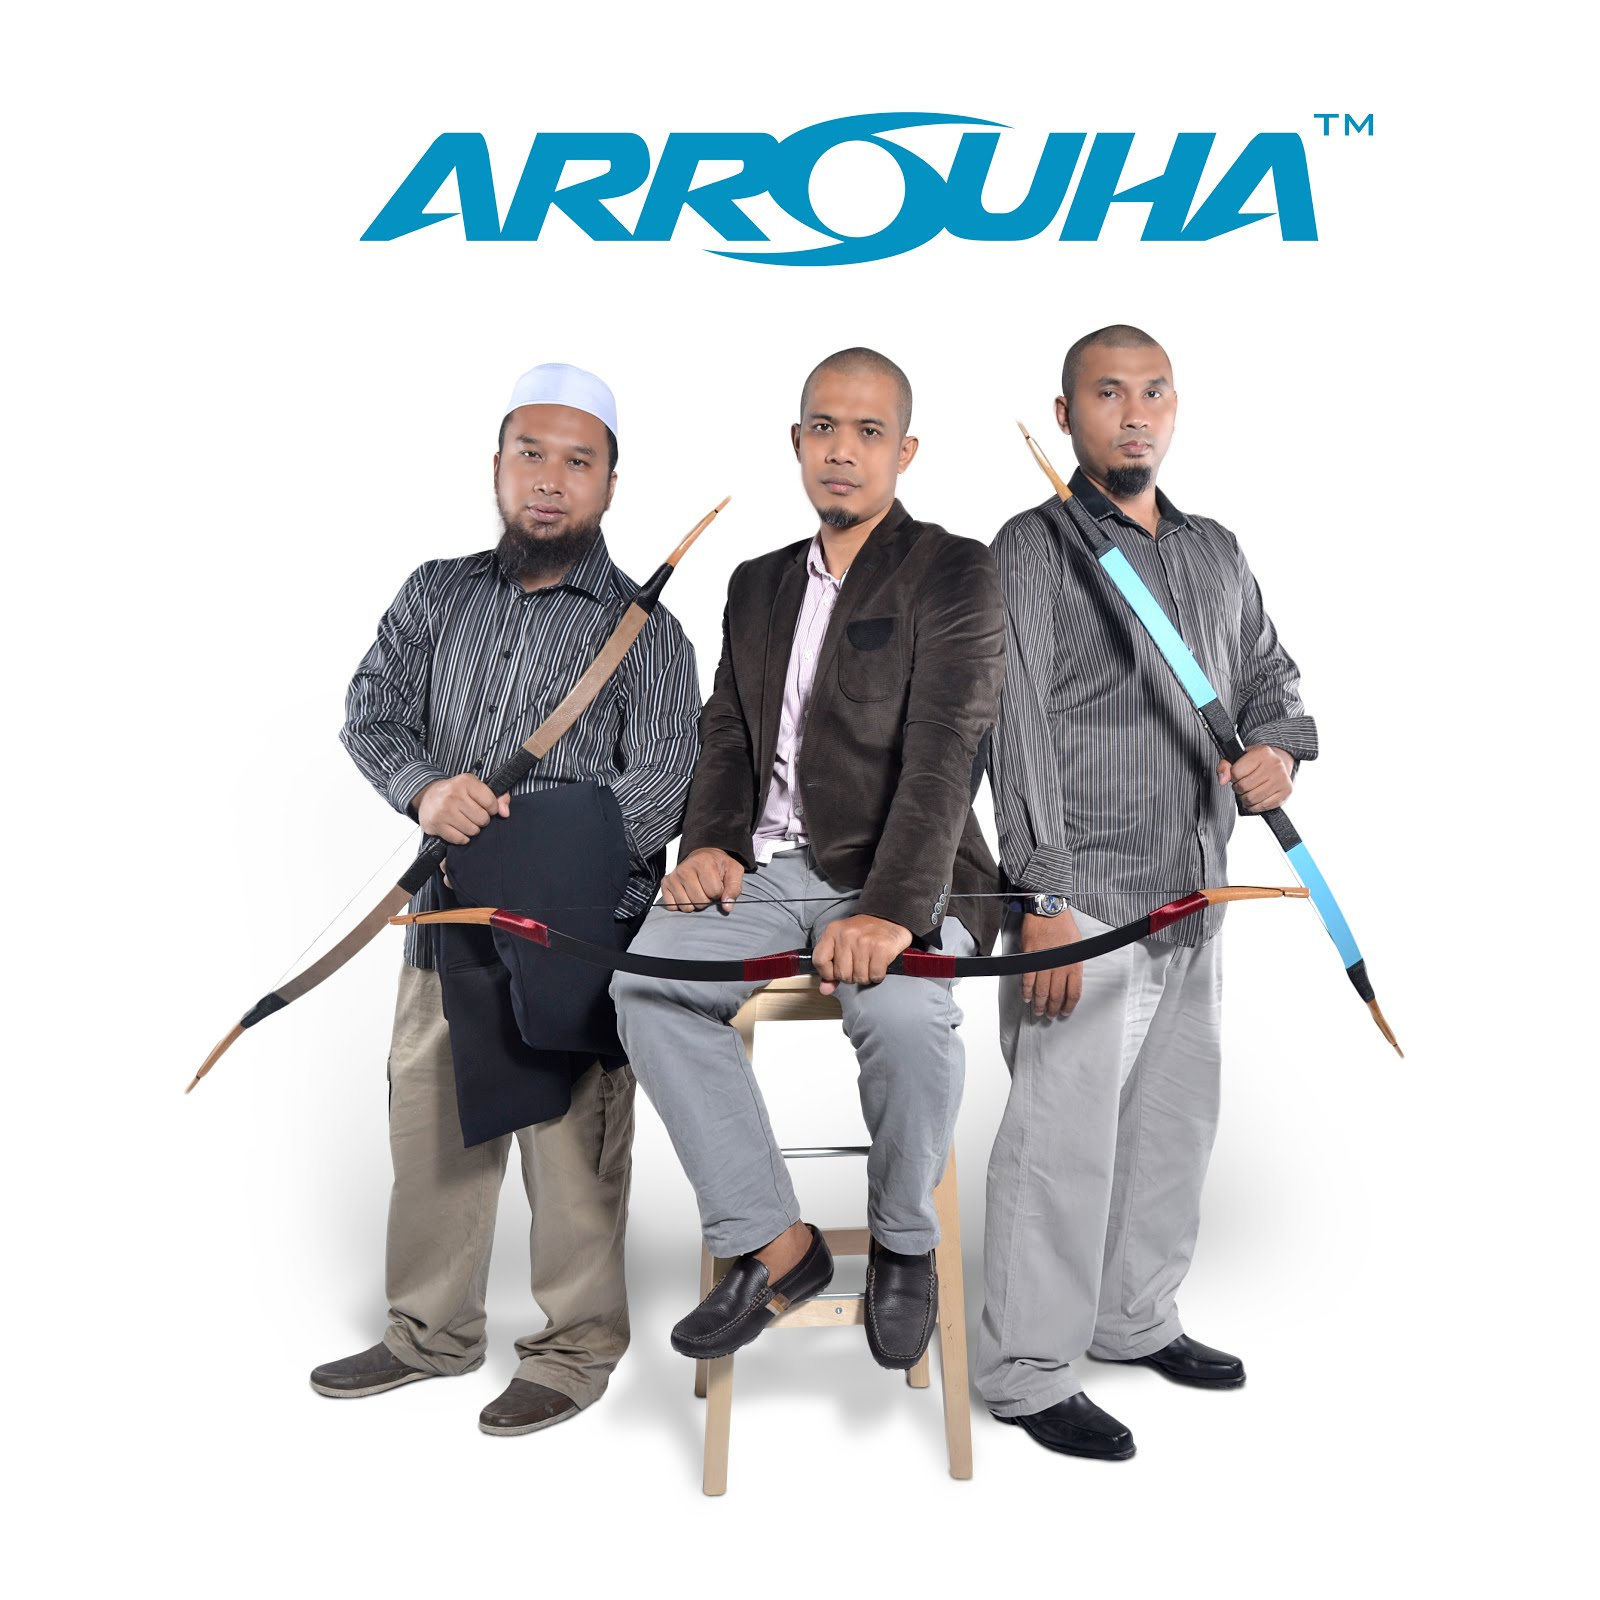 Arrouha Sports & Outdoors